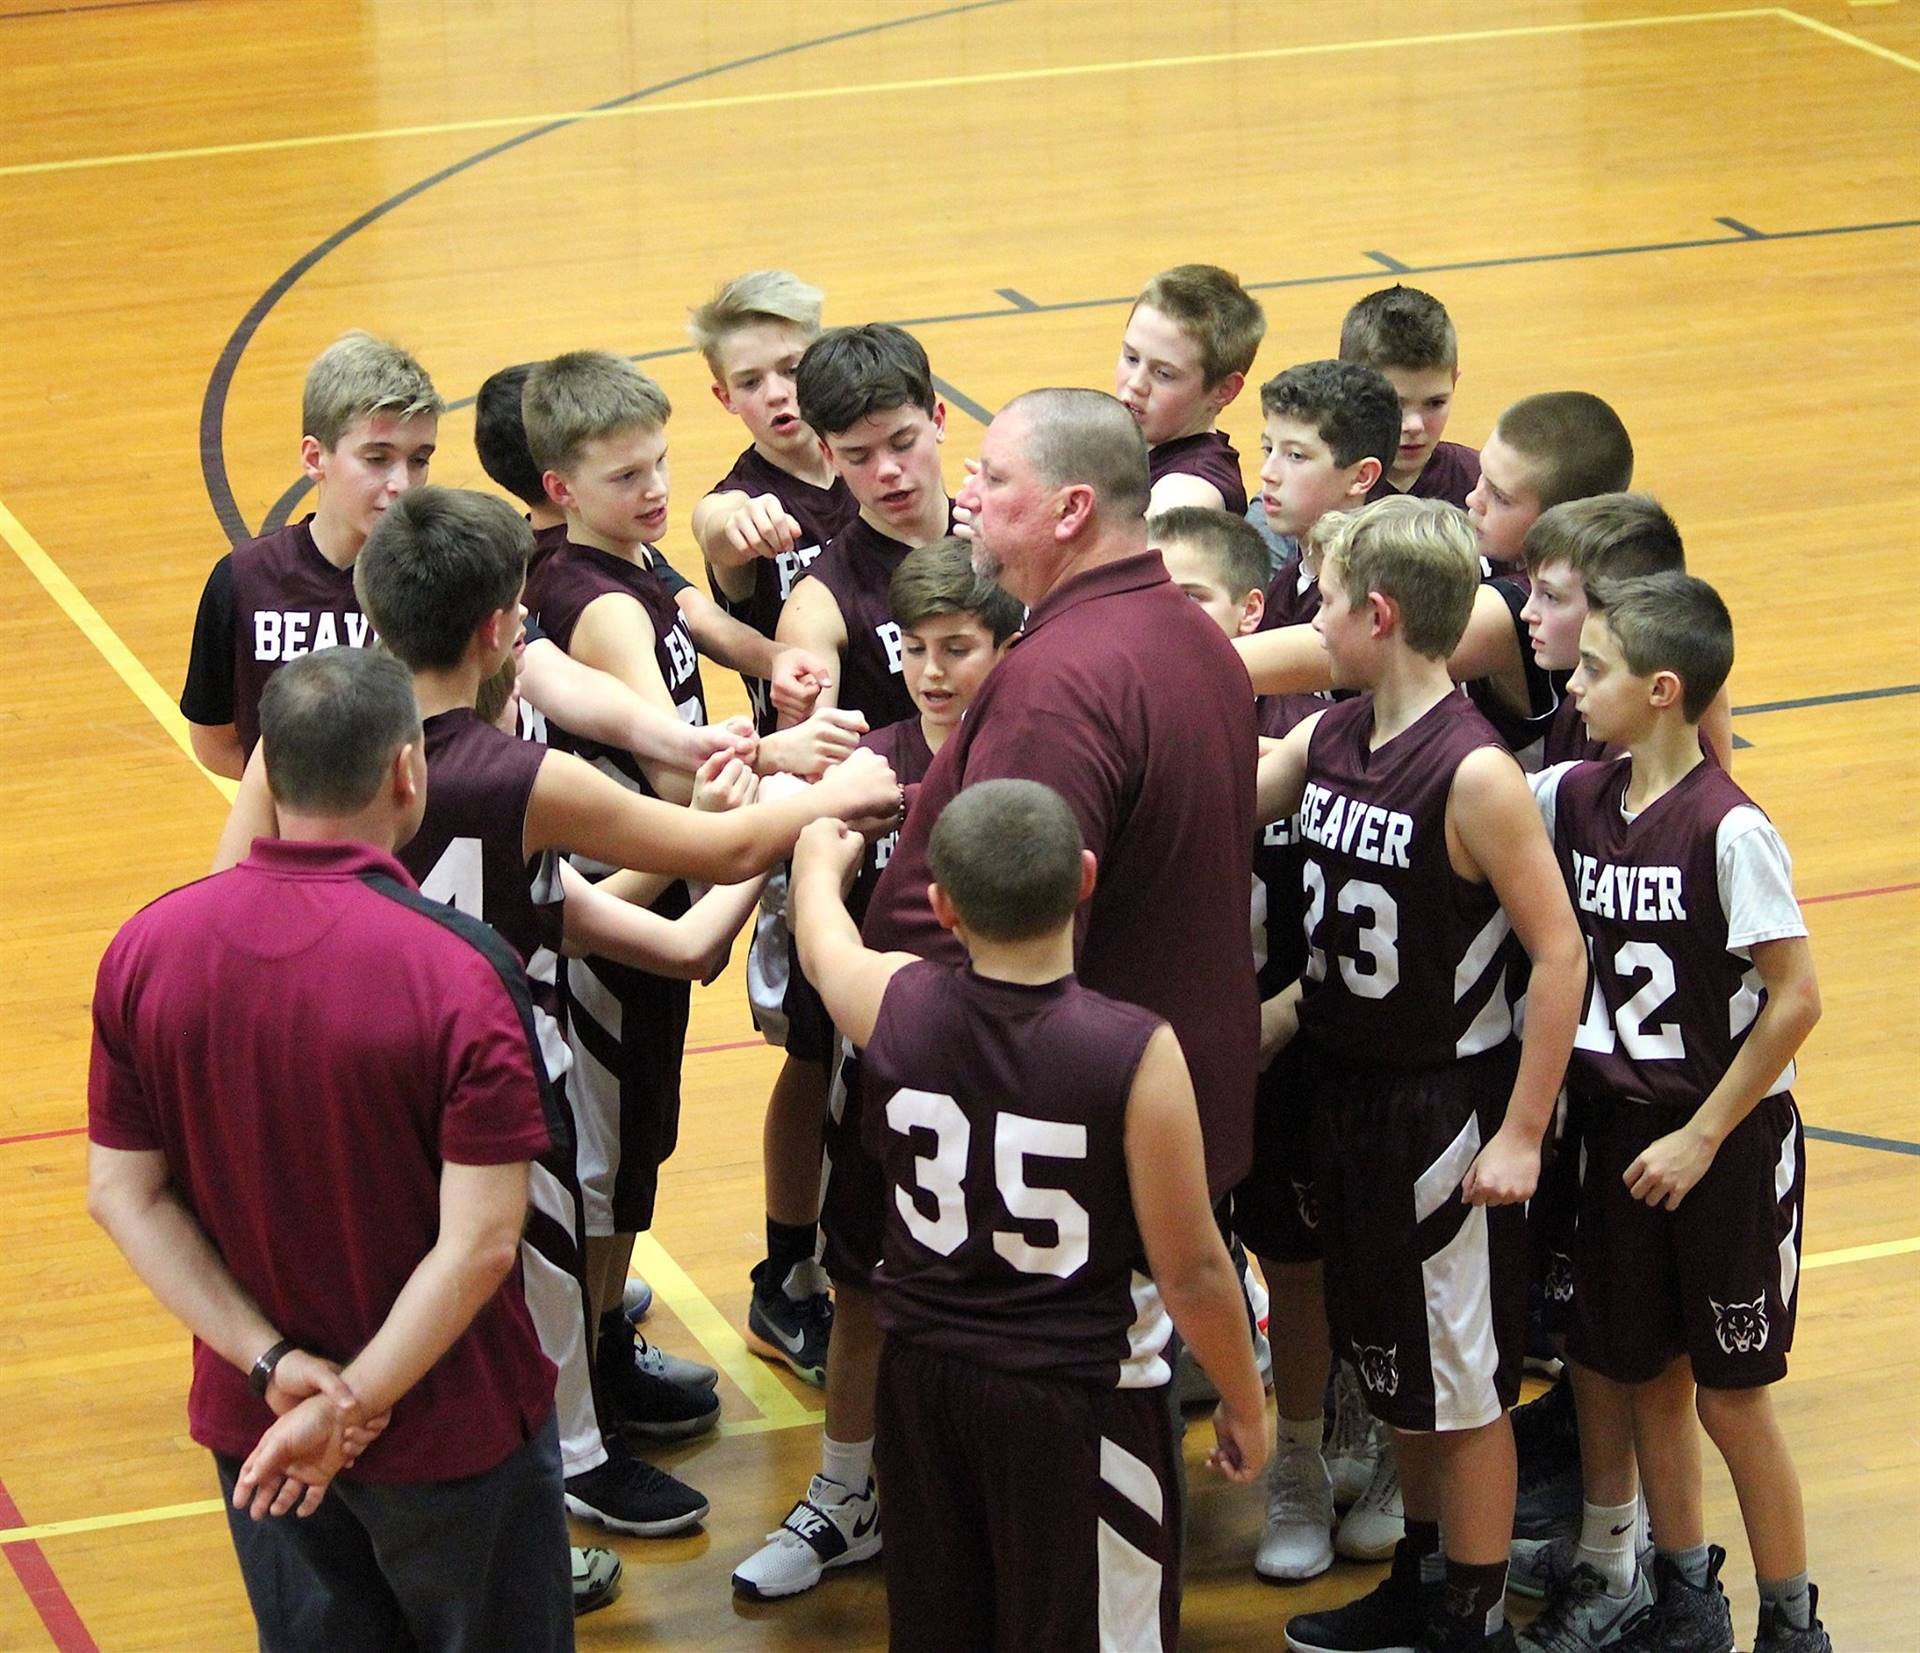 Coaches King and Mengel fire up the 7th grade basketball team!